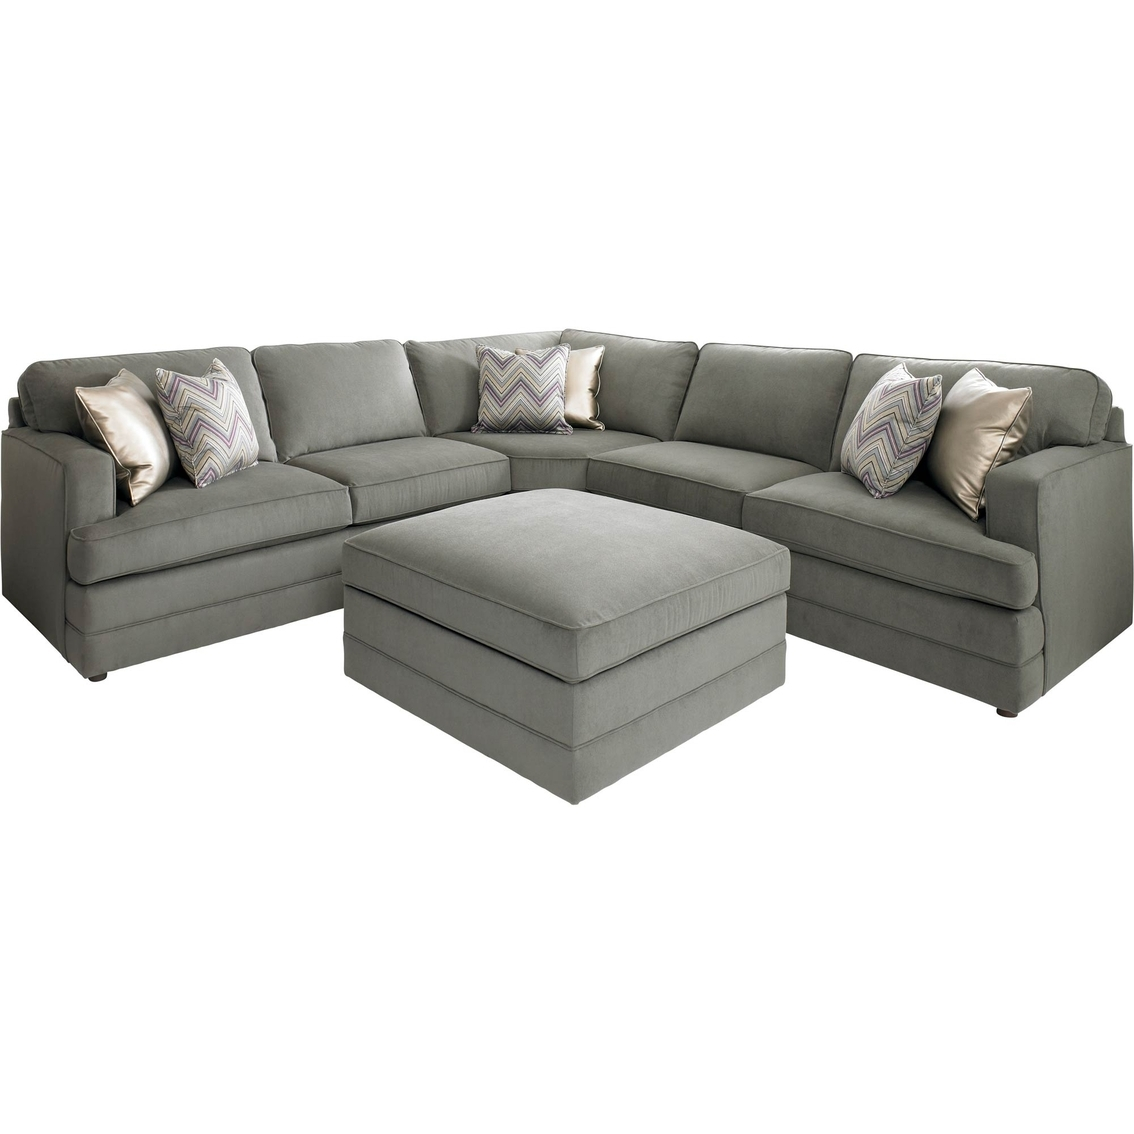 Bassett Dalton L Shaped Sectional Sofa With Ottoman Base House Regarding Bassett Sectional Sofa (Image 4 of 15)